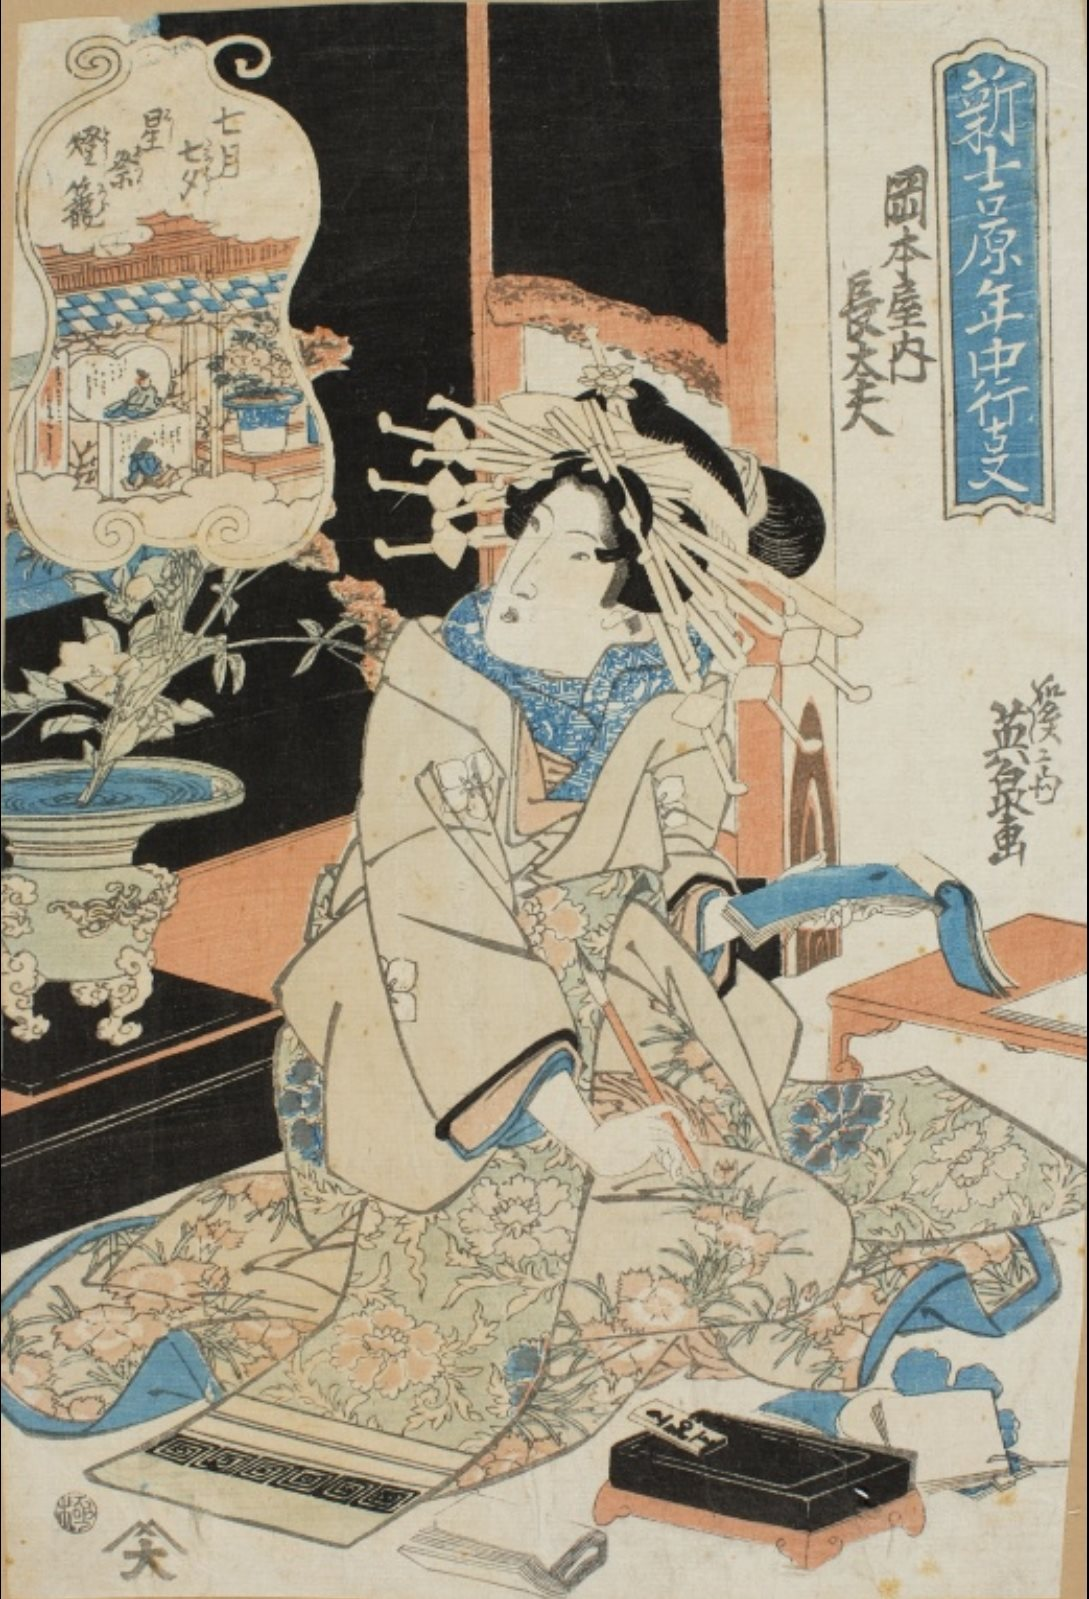 Keisai Eisen, Lanterns for the Star Festival (Tanabata, Yoshiwara), circa 1825-1830